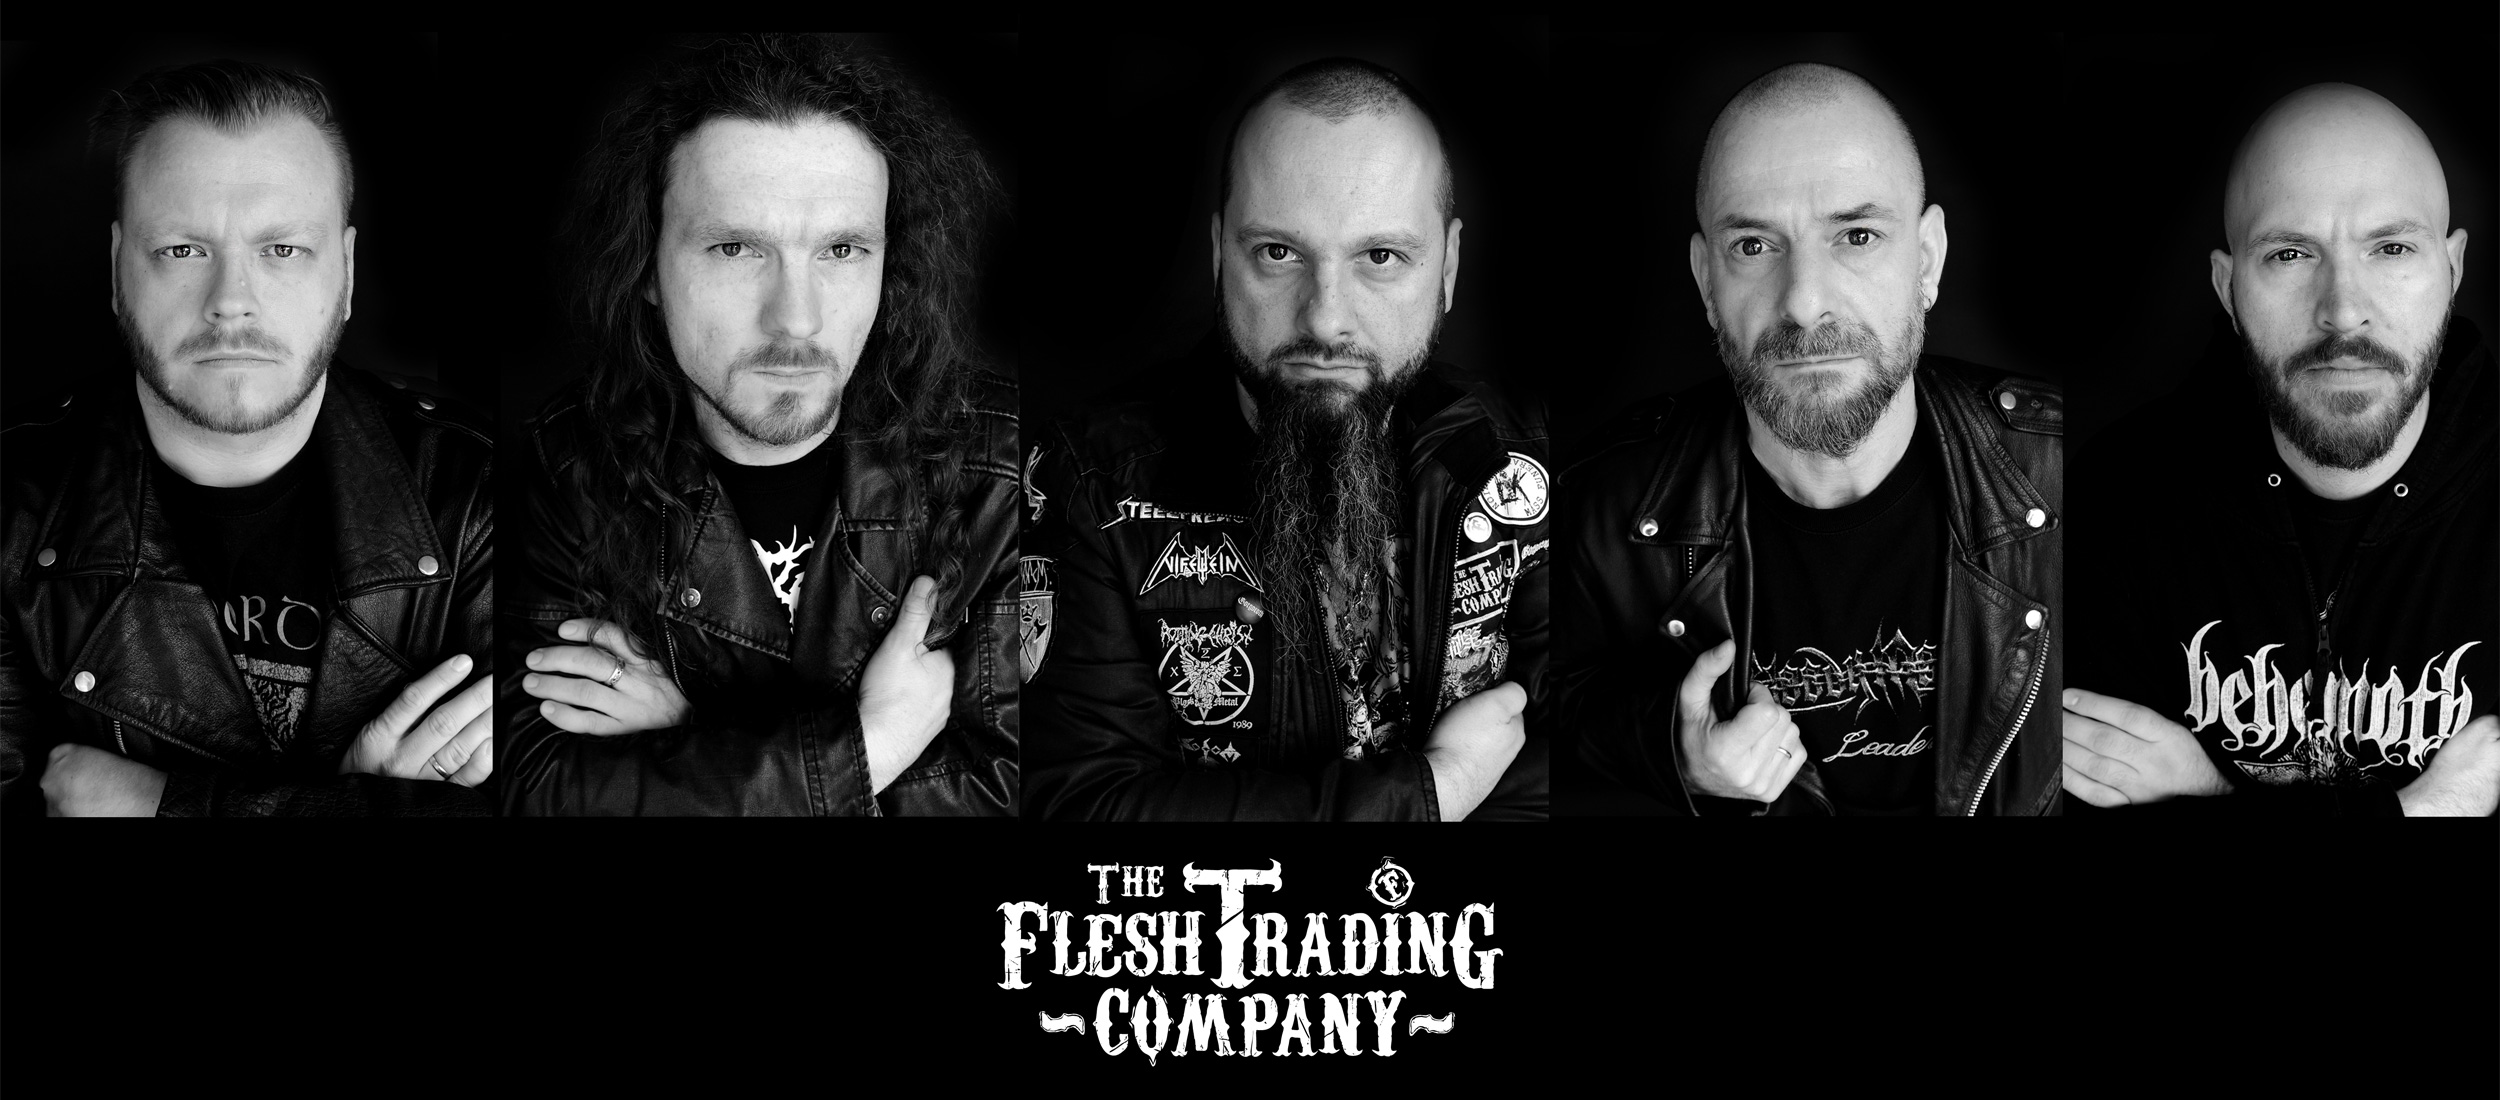 The Flesh Trading Company